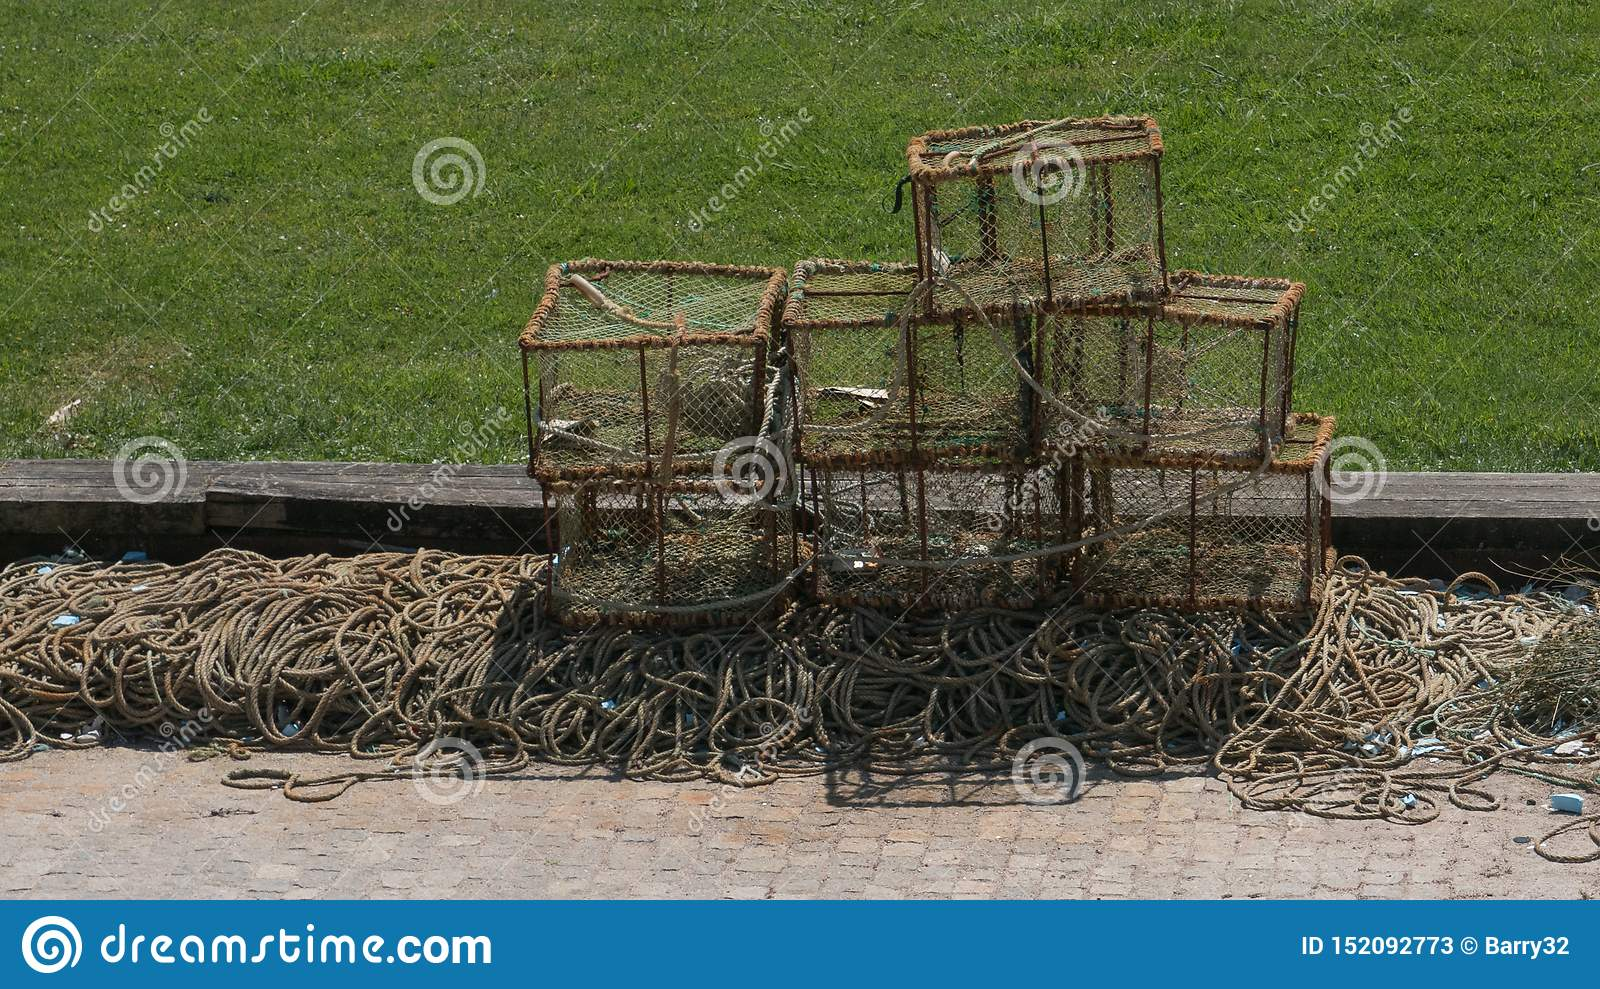 Crab or Lobster pots drying in the sun on the dock in Portugal during summer